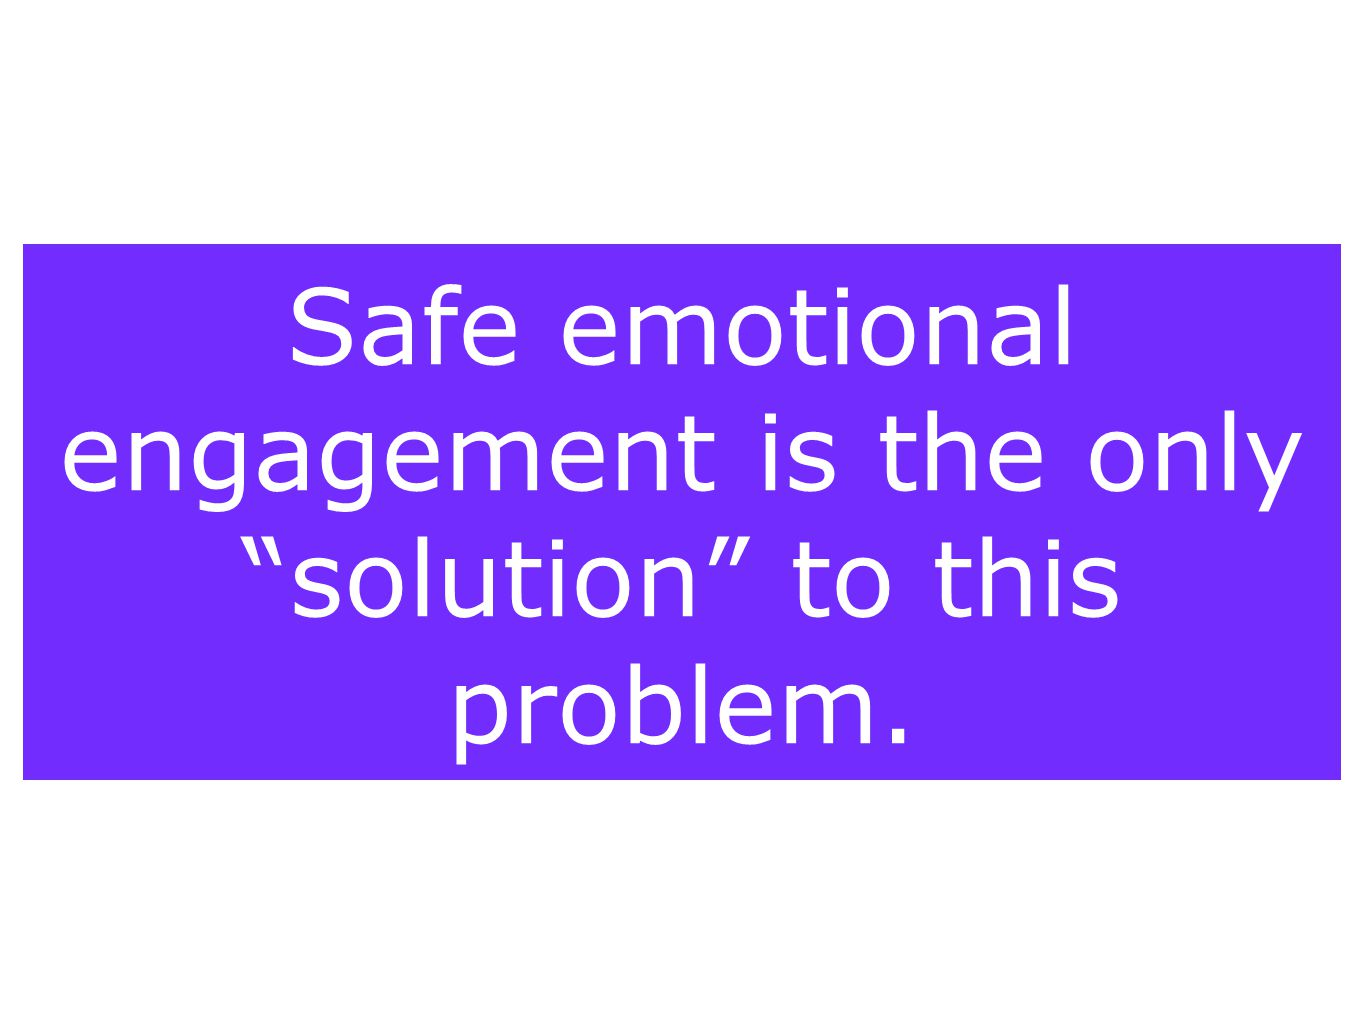 Safe emotional engagement is the only solution to this problem.